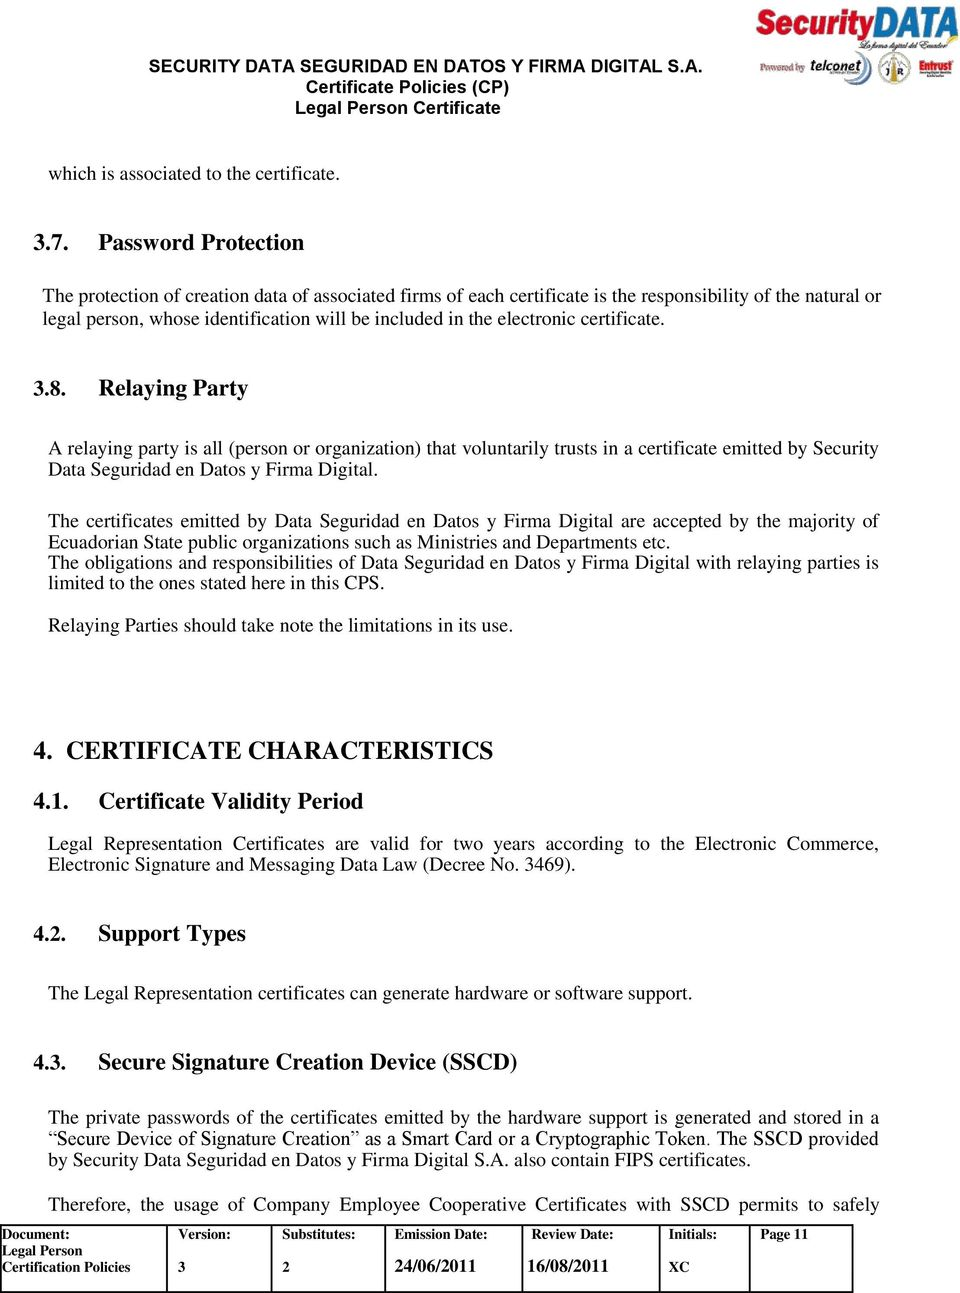 electronic certificate. 3.8. Relaying Party A relaying party is all (person or organization) that voluntarily trusts in a certificate emitted by Security Data Seguridad en Datos y Firma Digital.